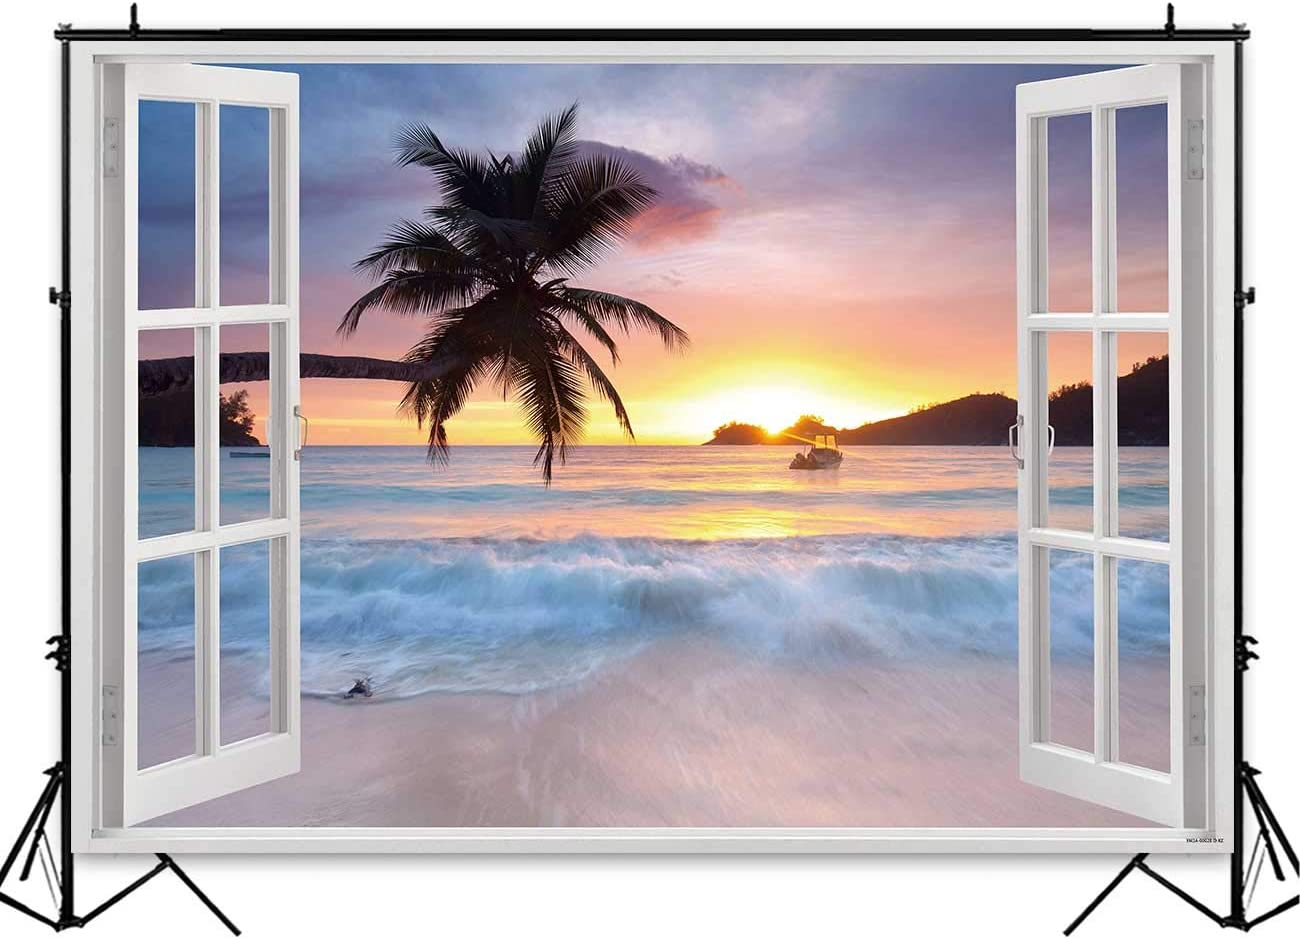 7x7FT Vinyl Photo Backdrops,Pale Blue,Camo Pattern Tropical Background for Selfie Birthday Party Pictures Photo Booth Shoot